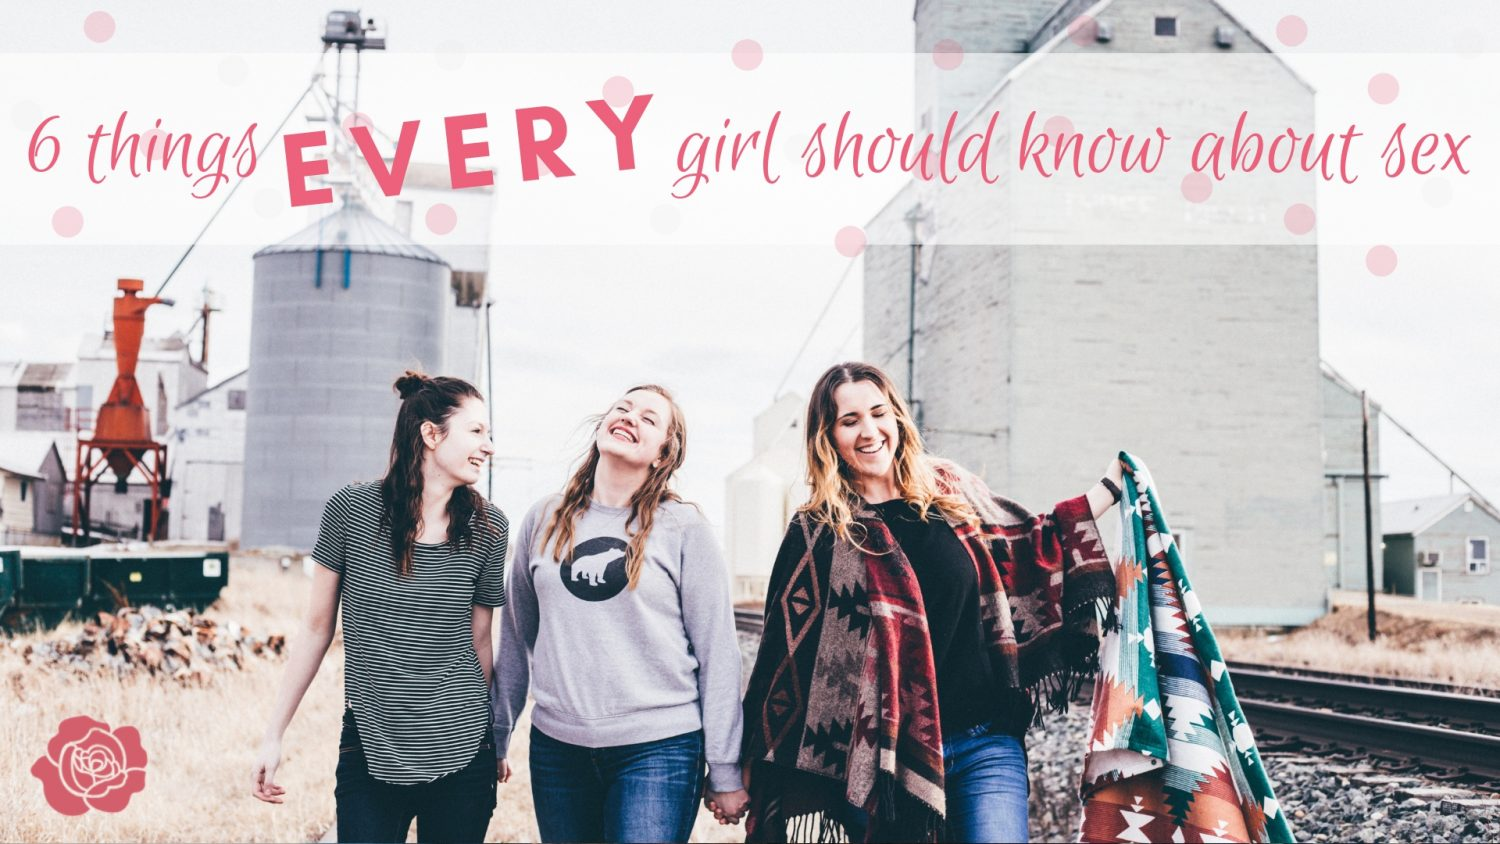 6 things every girl should know about sex